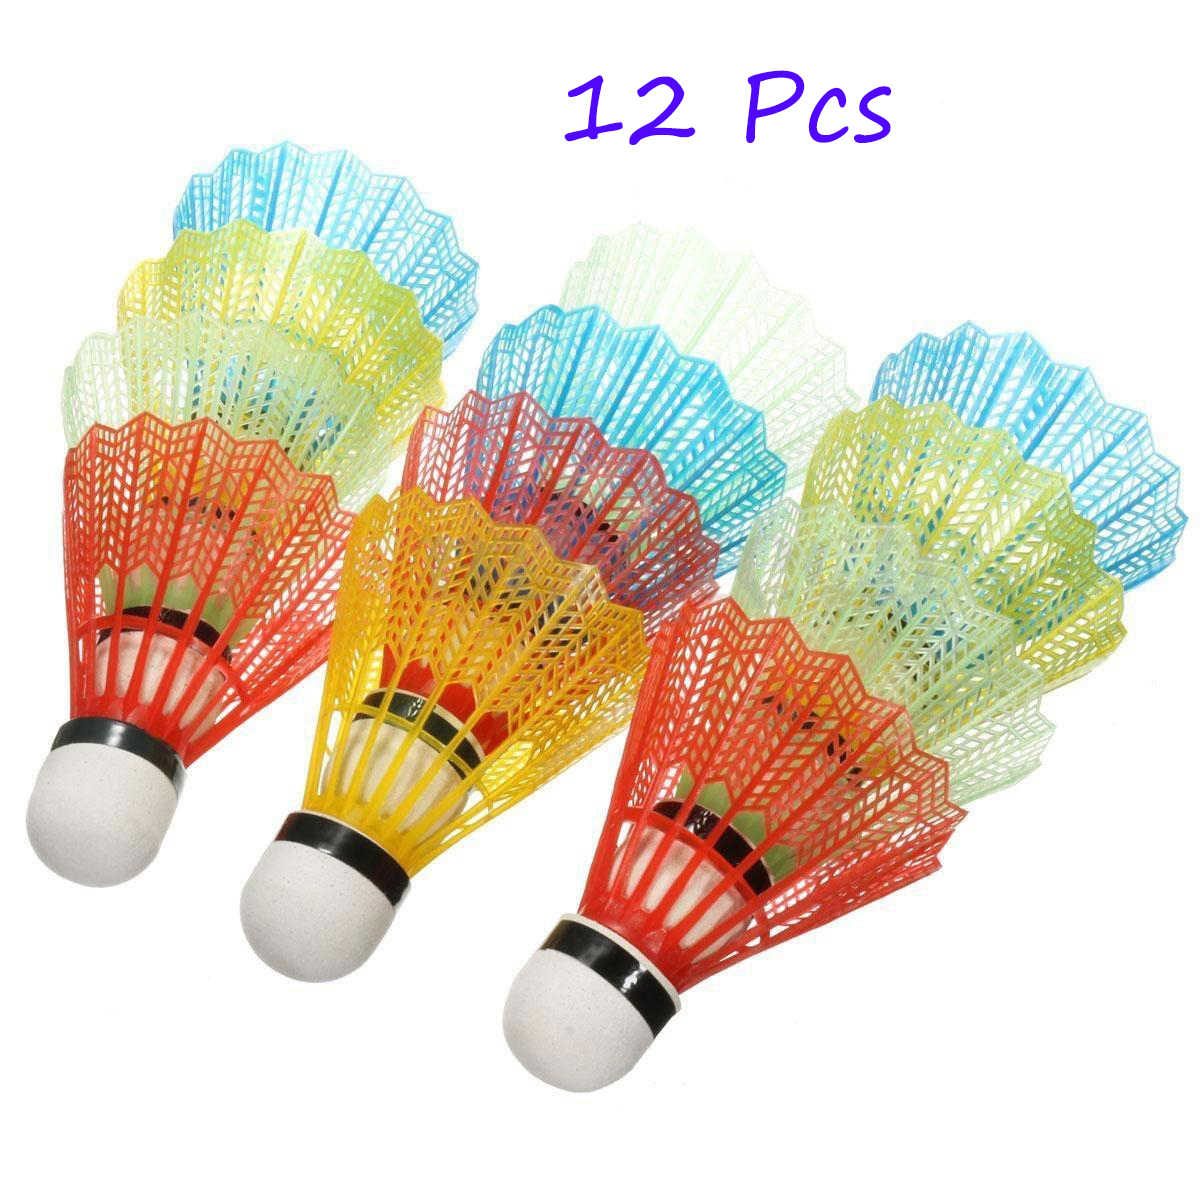 12pcs Colorful Badminton Balls Portable Shuttlecocks Products Sport Training Train Outdoor Supplies